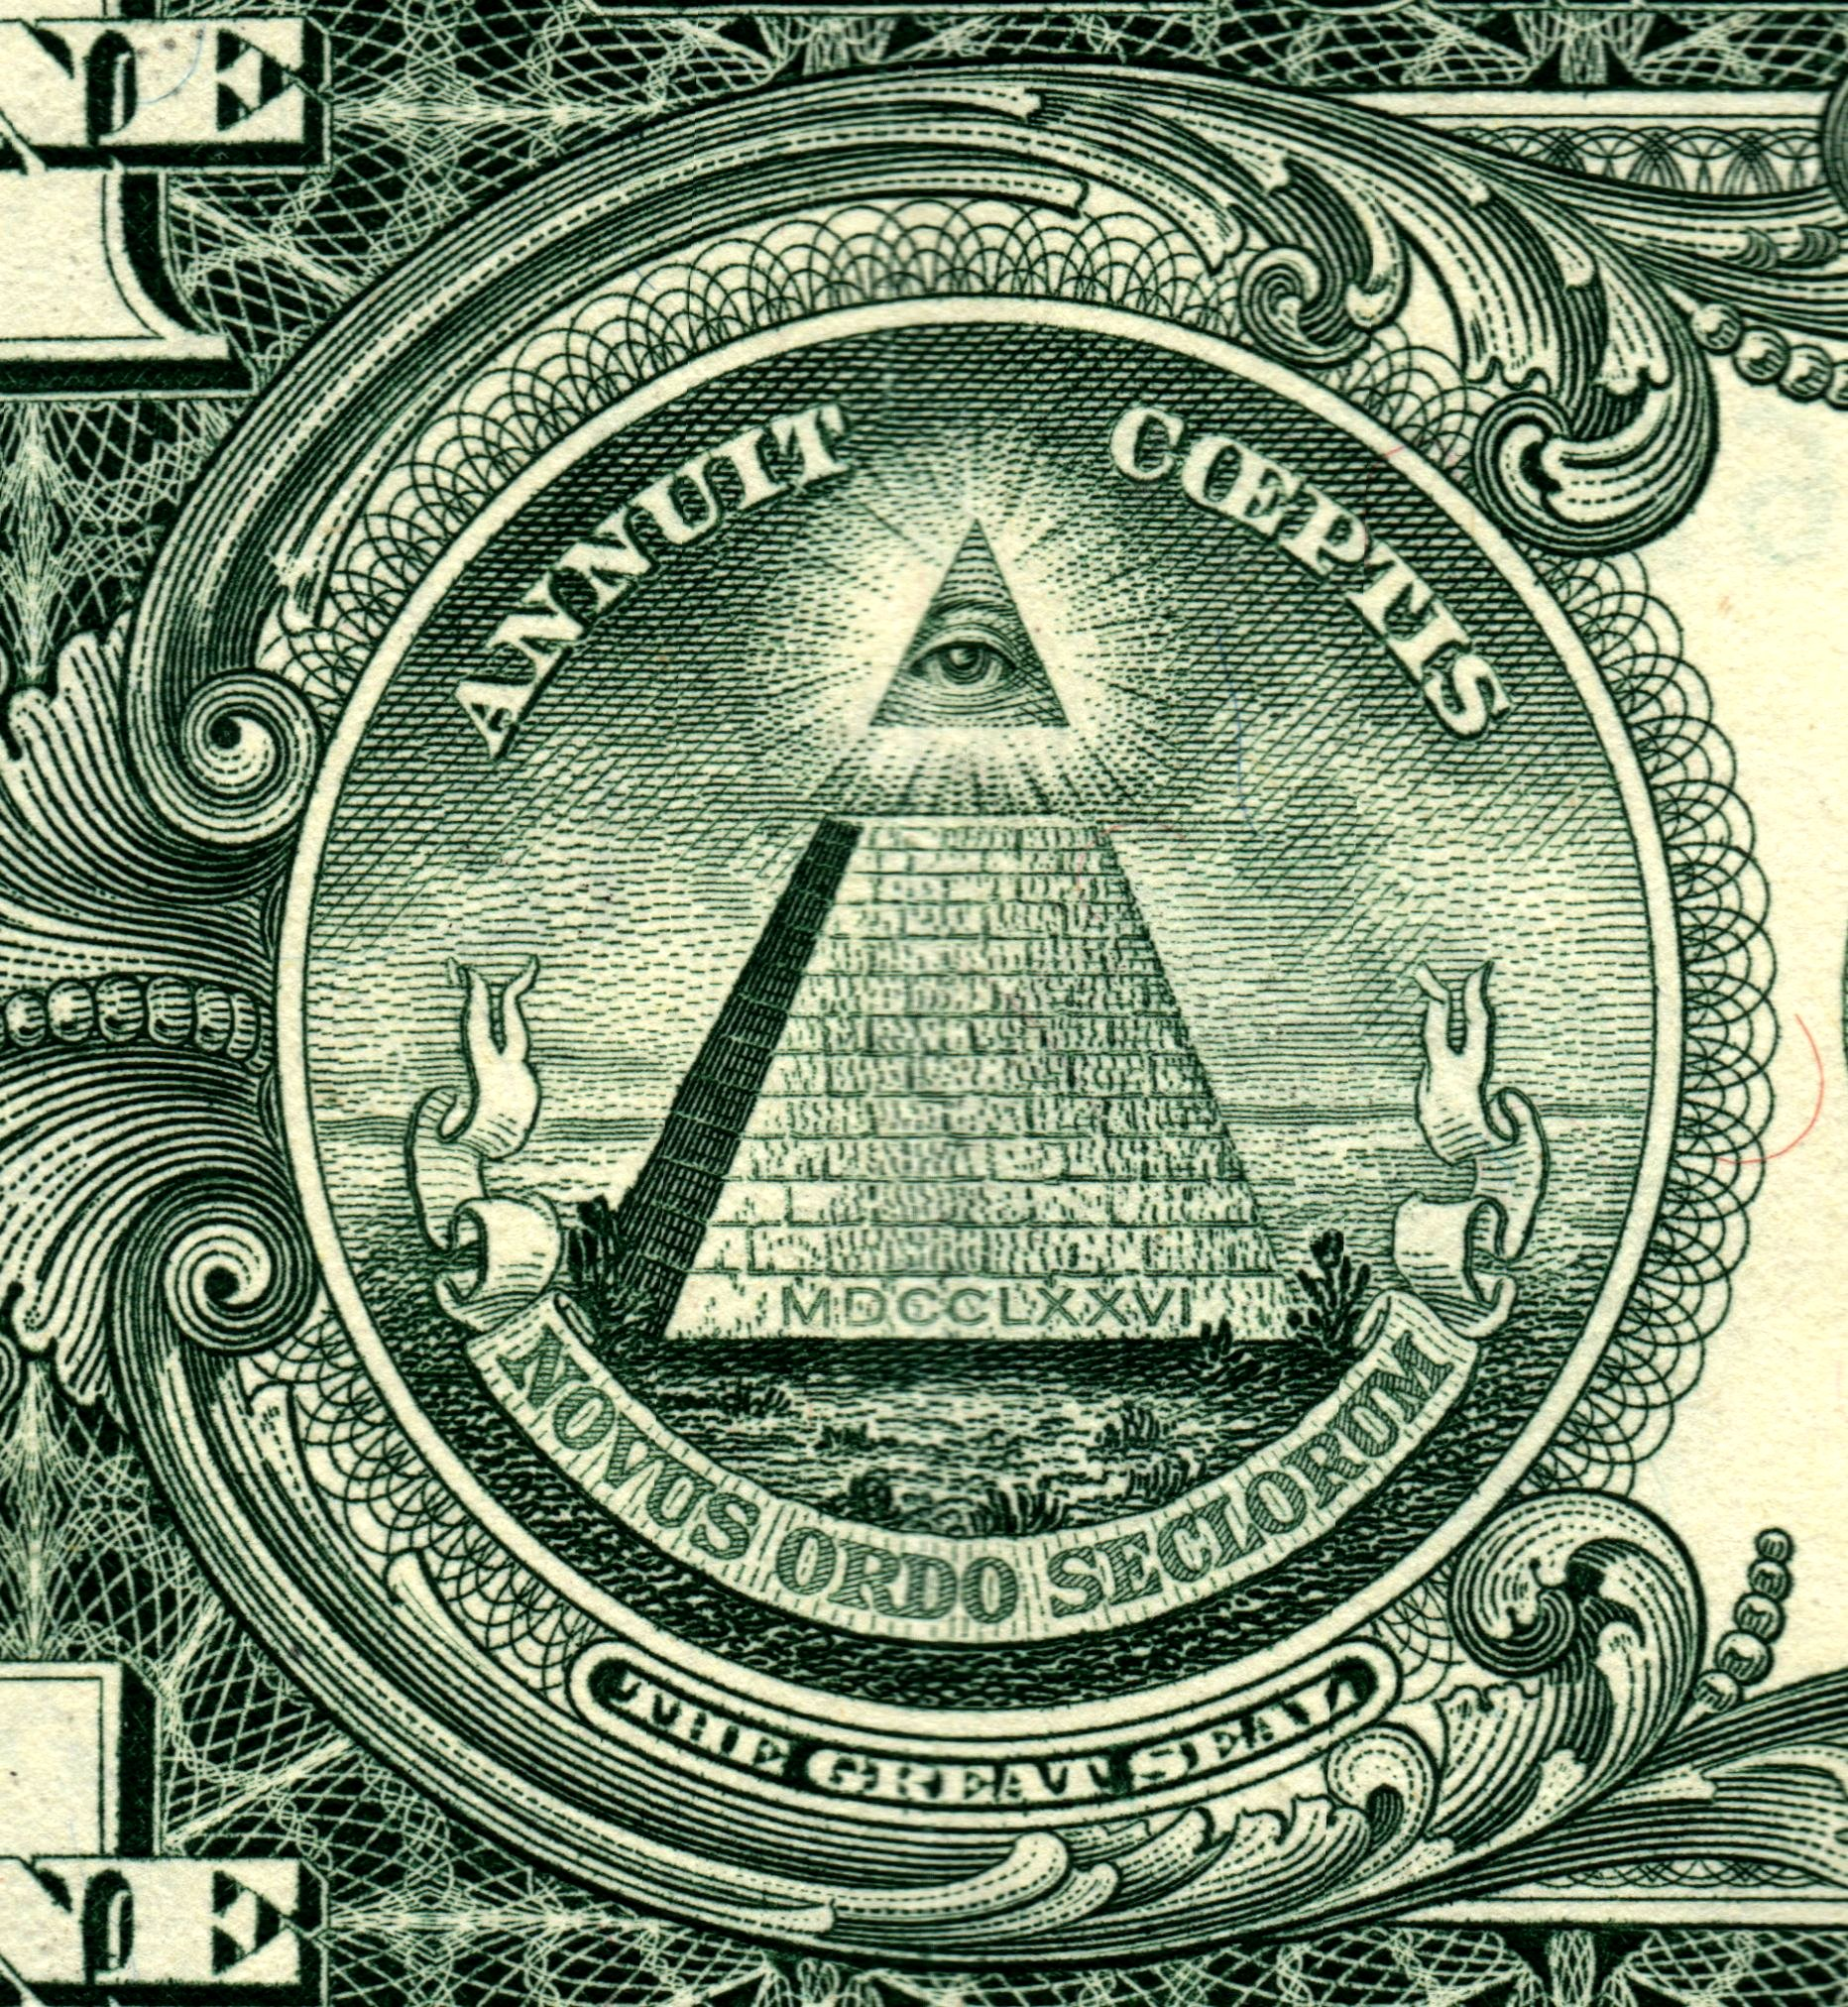 All Seeing Eye Dollar Bill